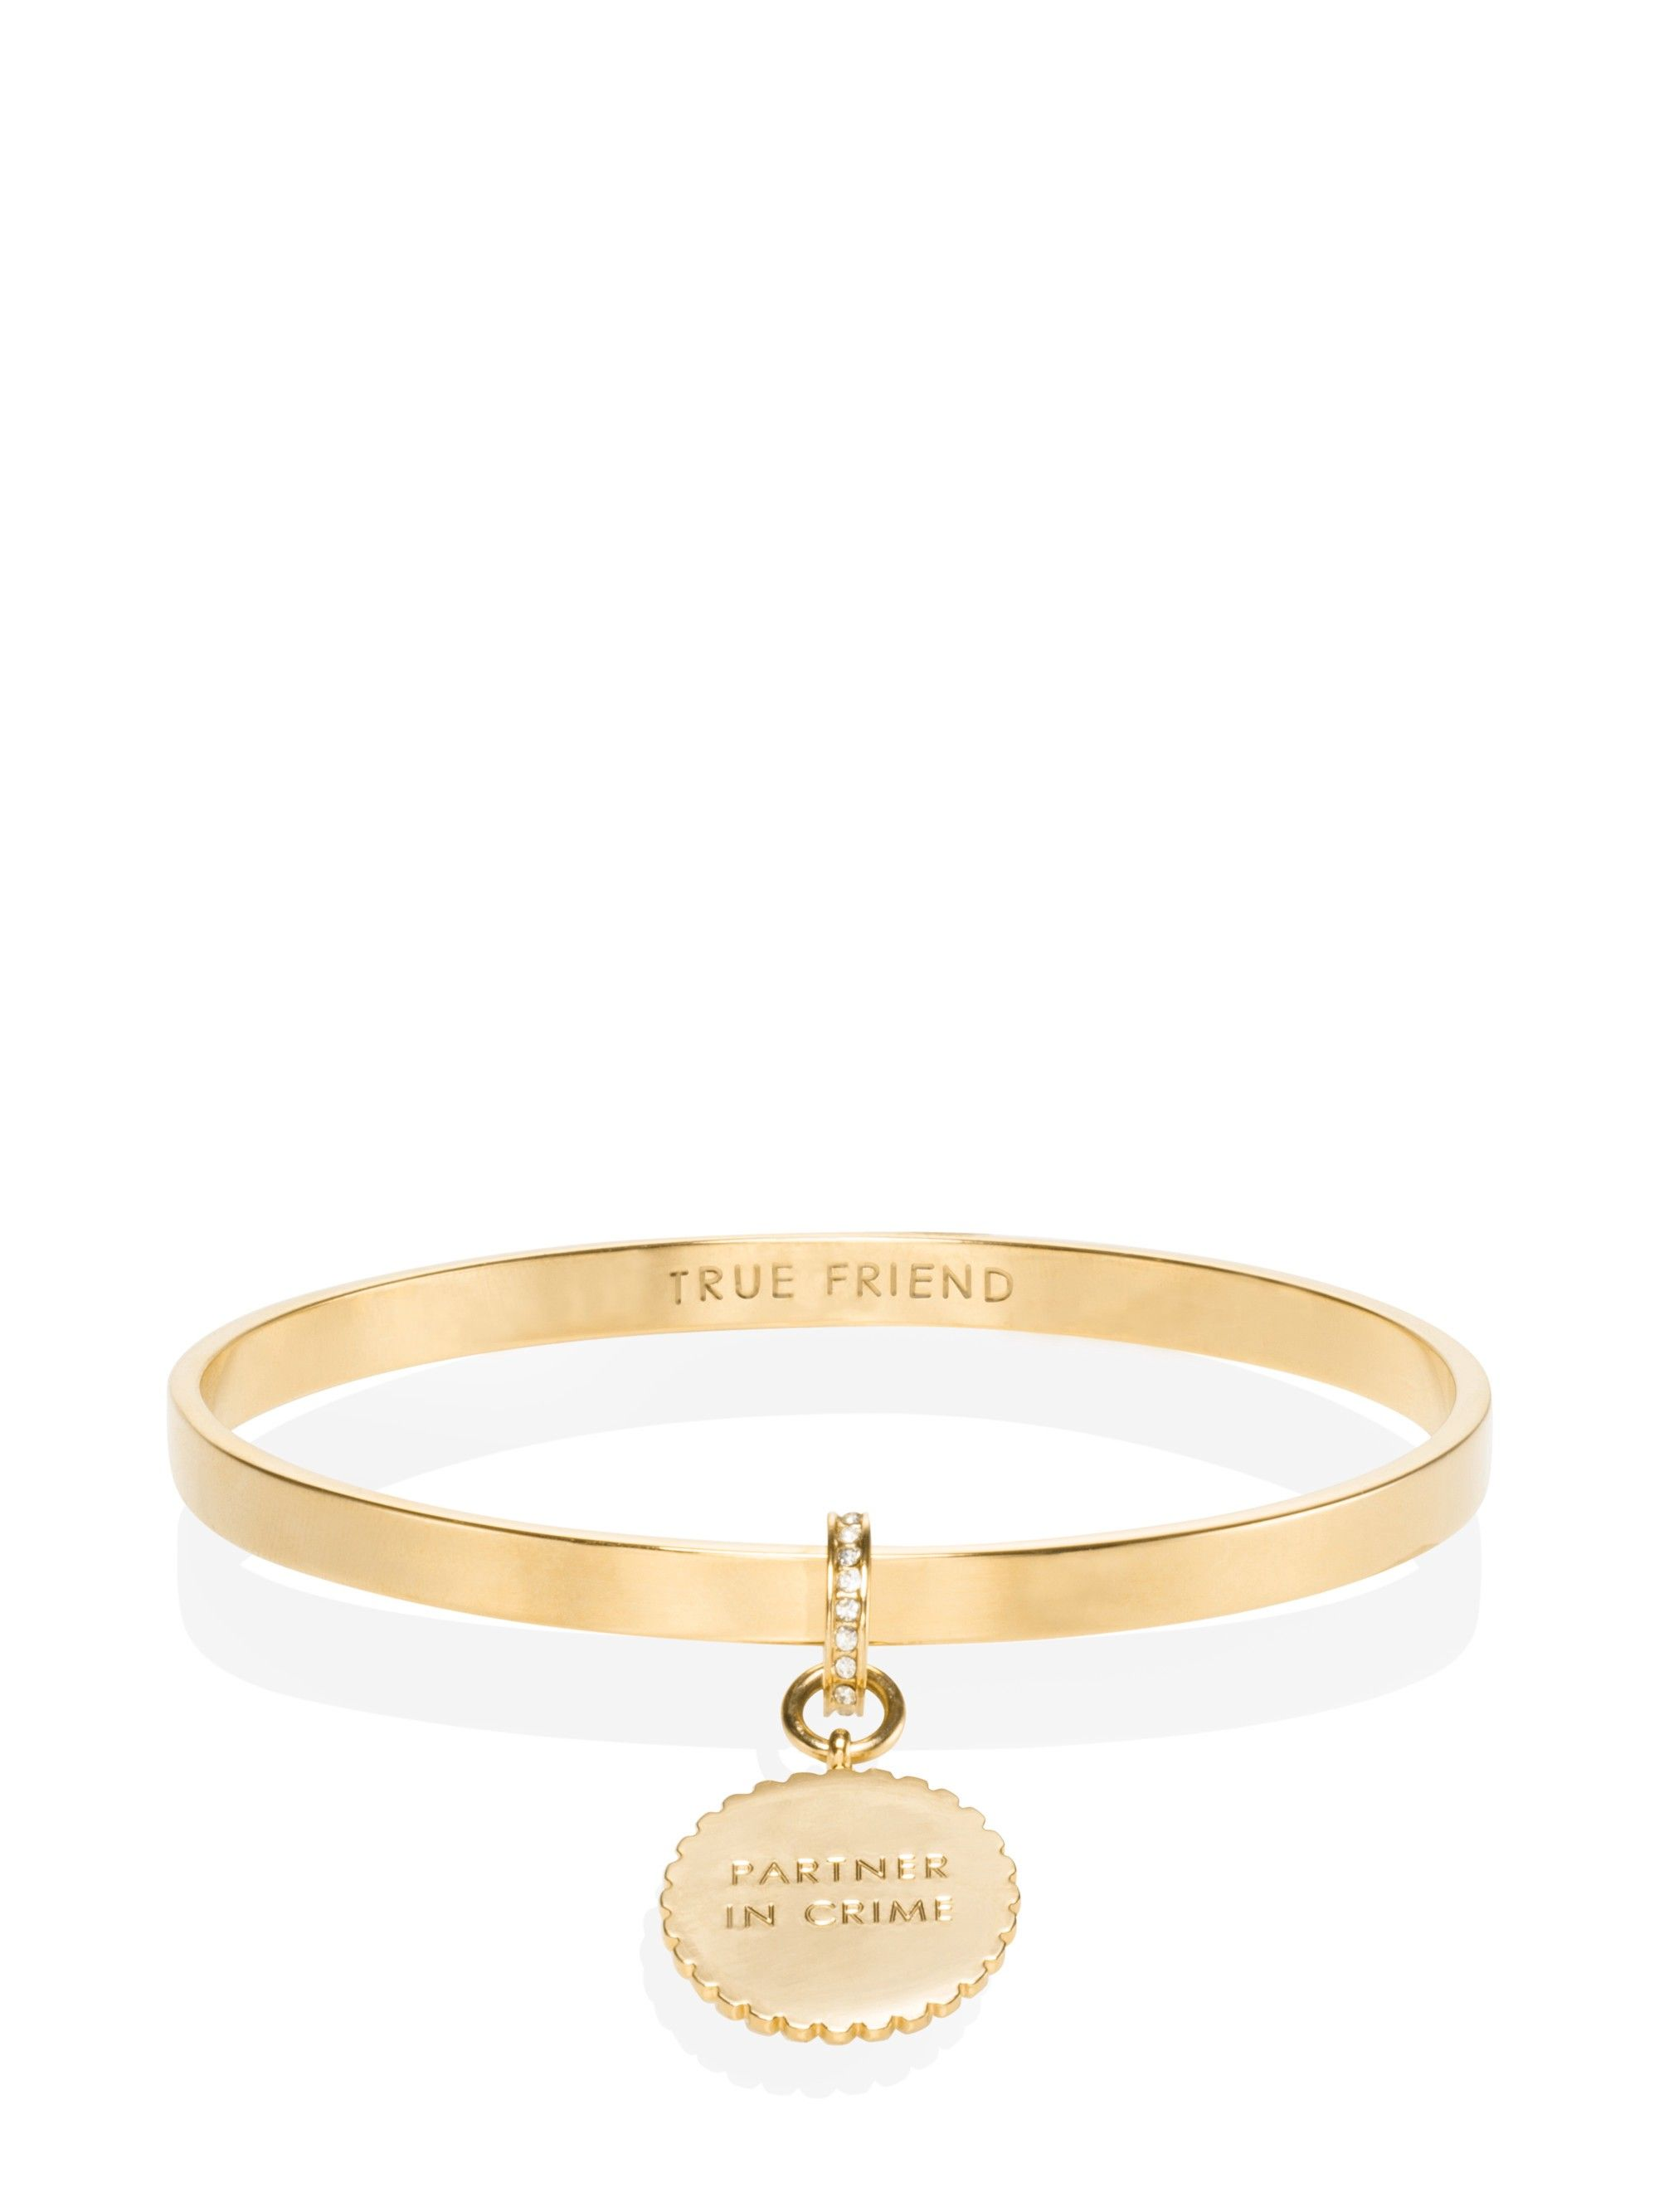 Say yes scalloped partners in crime bangle by kate spade in